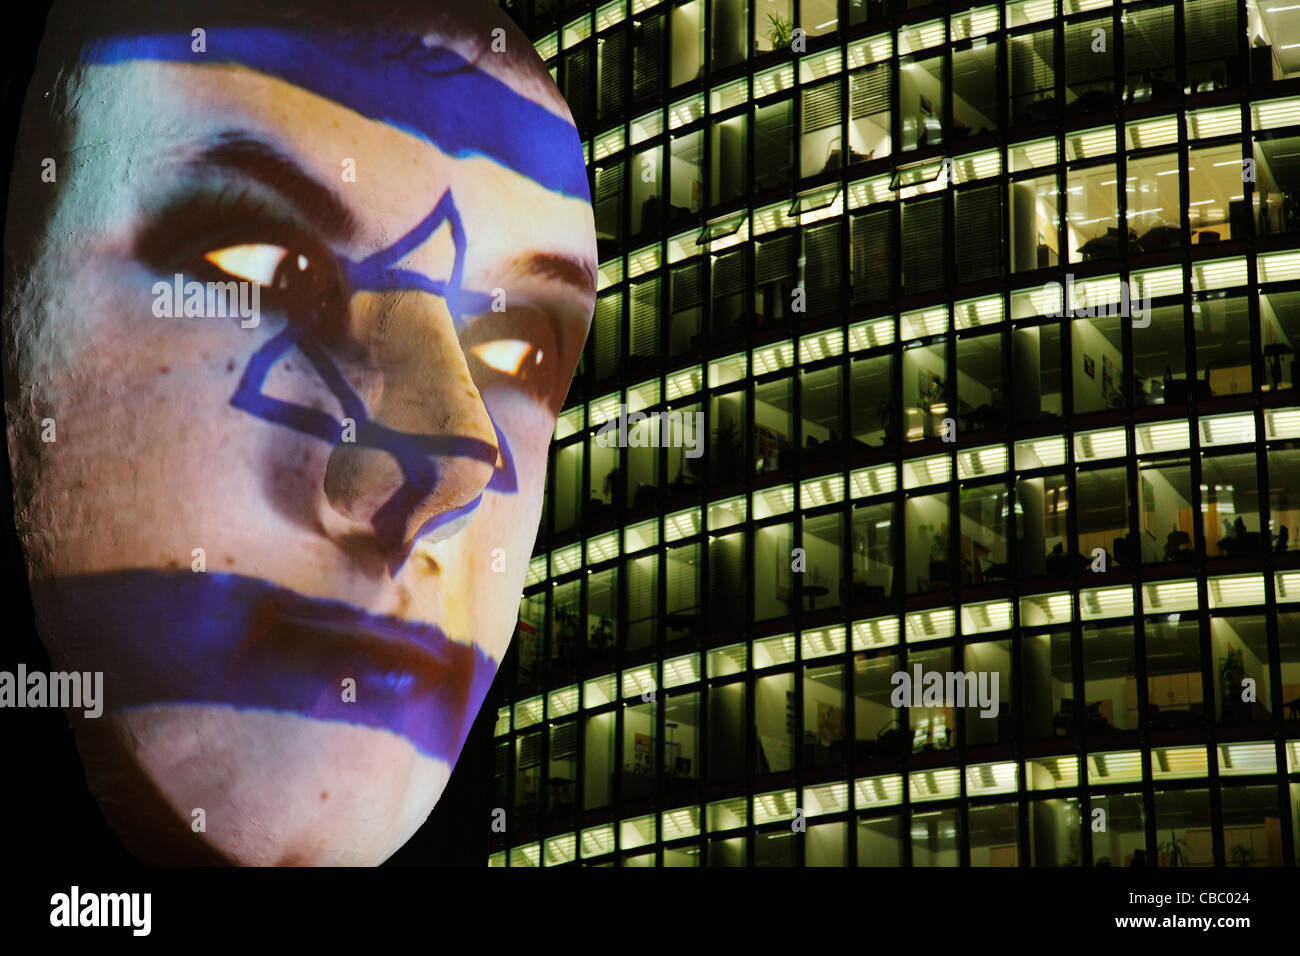 Huge sculpture of a face illuminated by a image of an Israeli flag painted face during the festival of lights 2011 Stock Photo